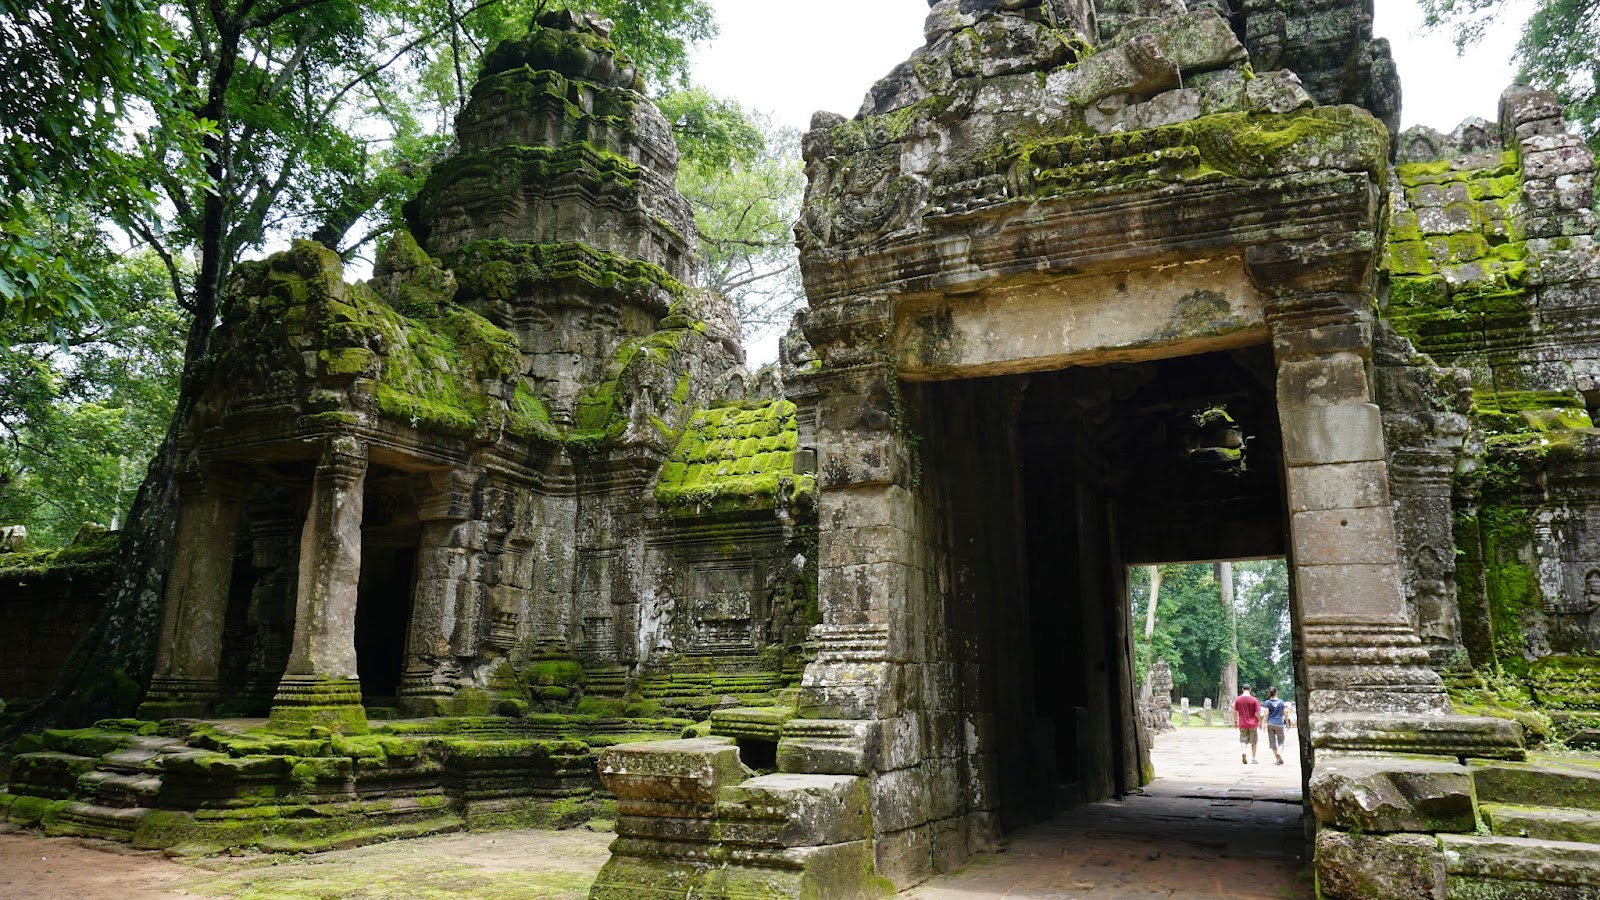 Preah Khan, one of Angkor's hidden gems